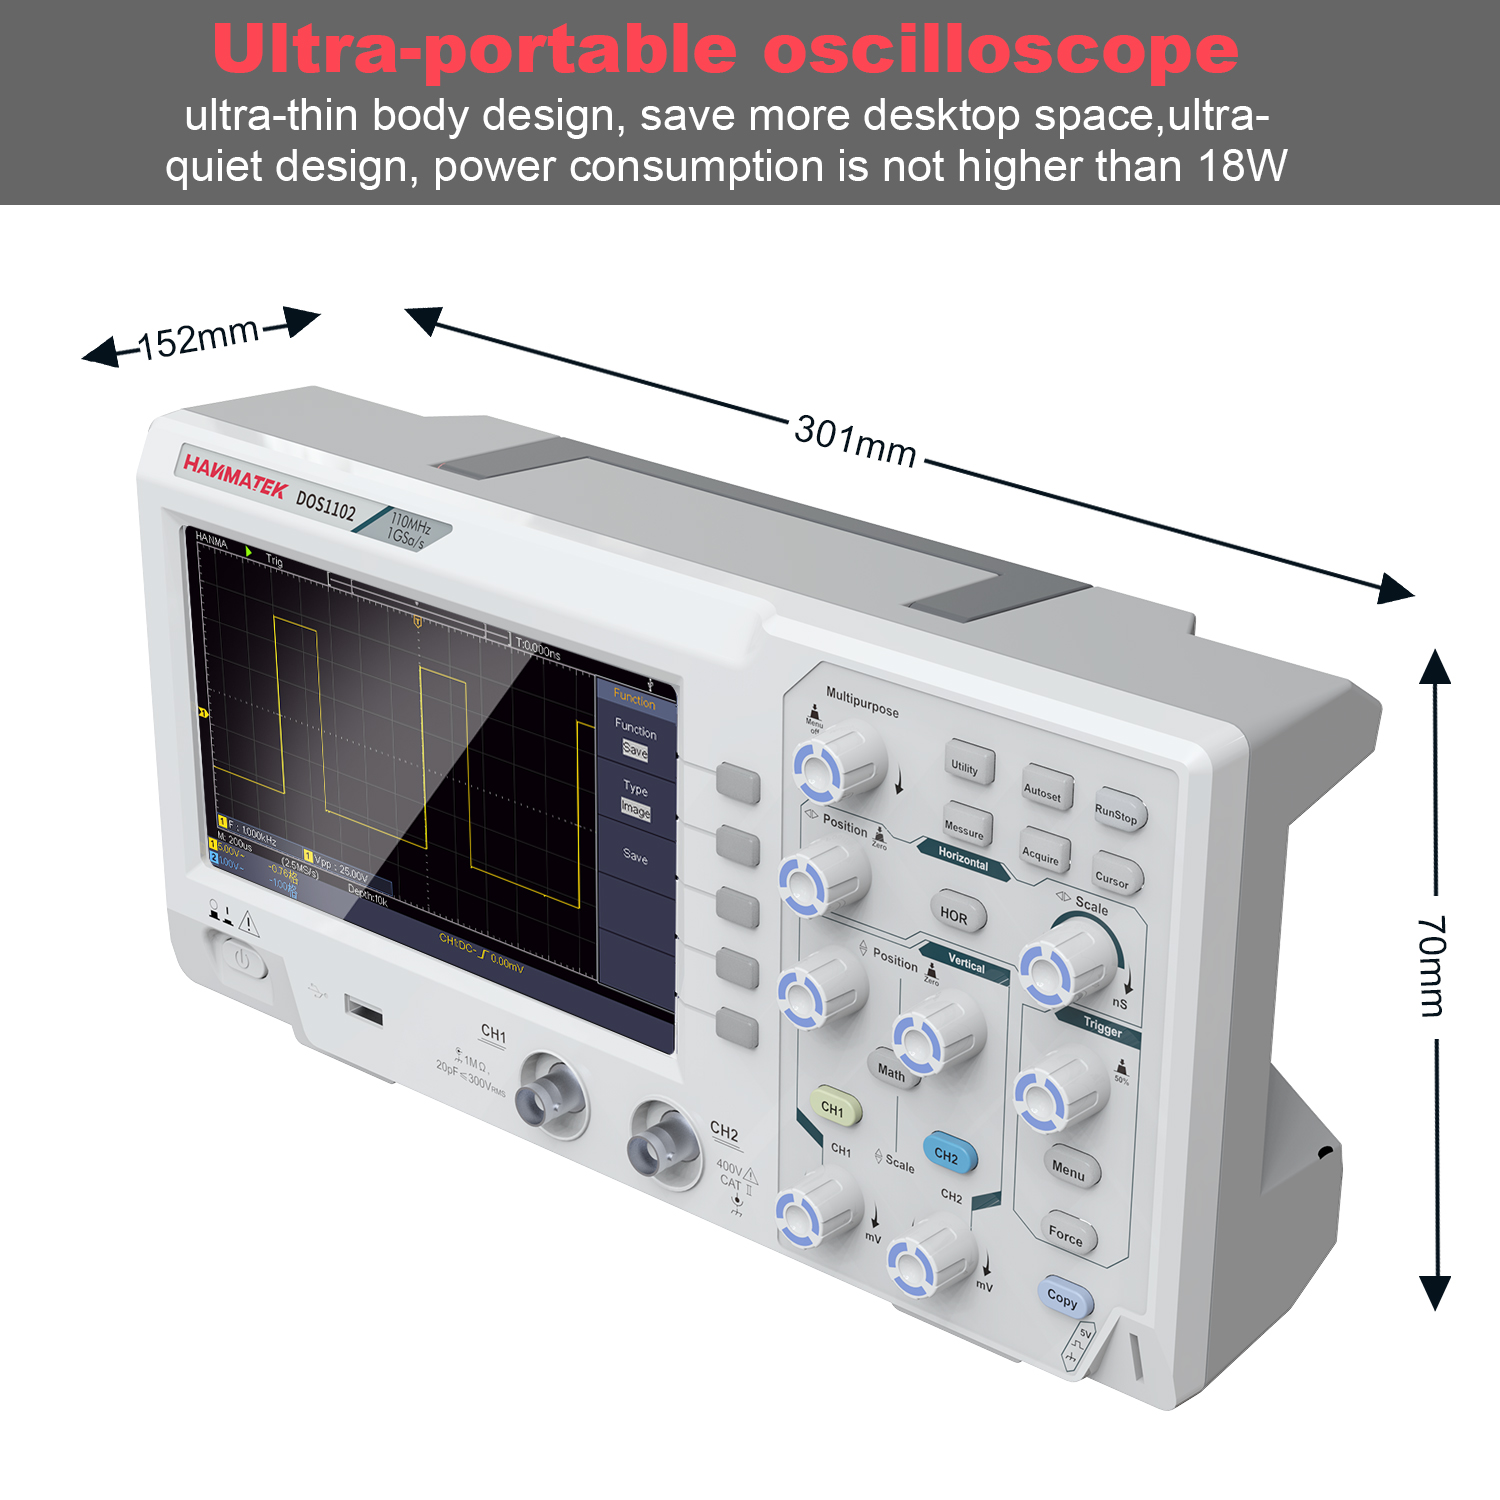 DOS1102 Digital Oscilloscope with 100mhz Bandwidth and 7 inch TFT LCD Screen